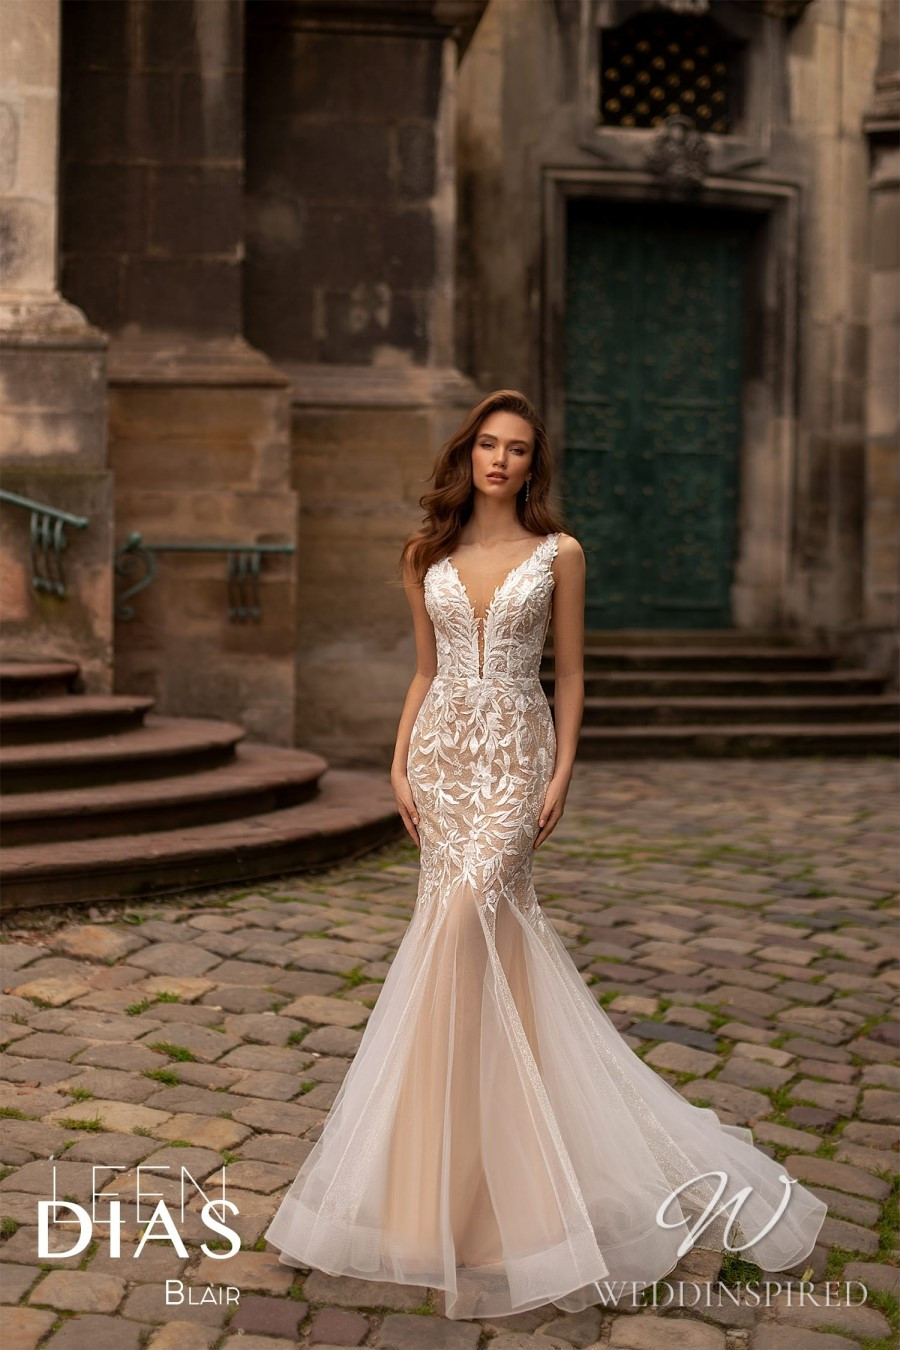 A Leen Dias 2021 lace and tulle mermaid wedding dress